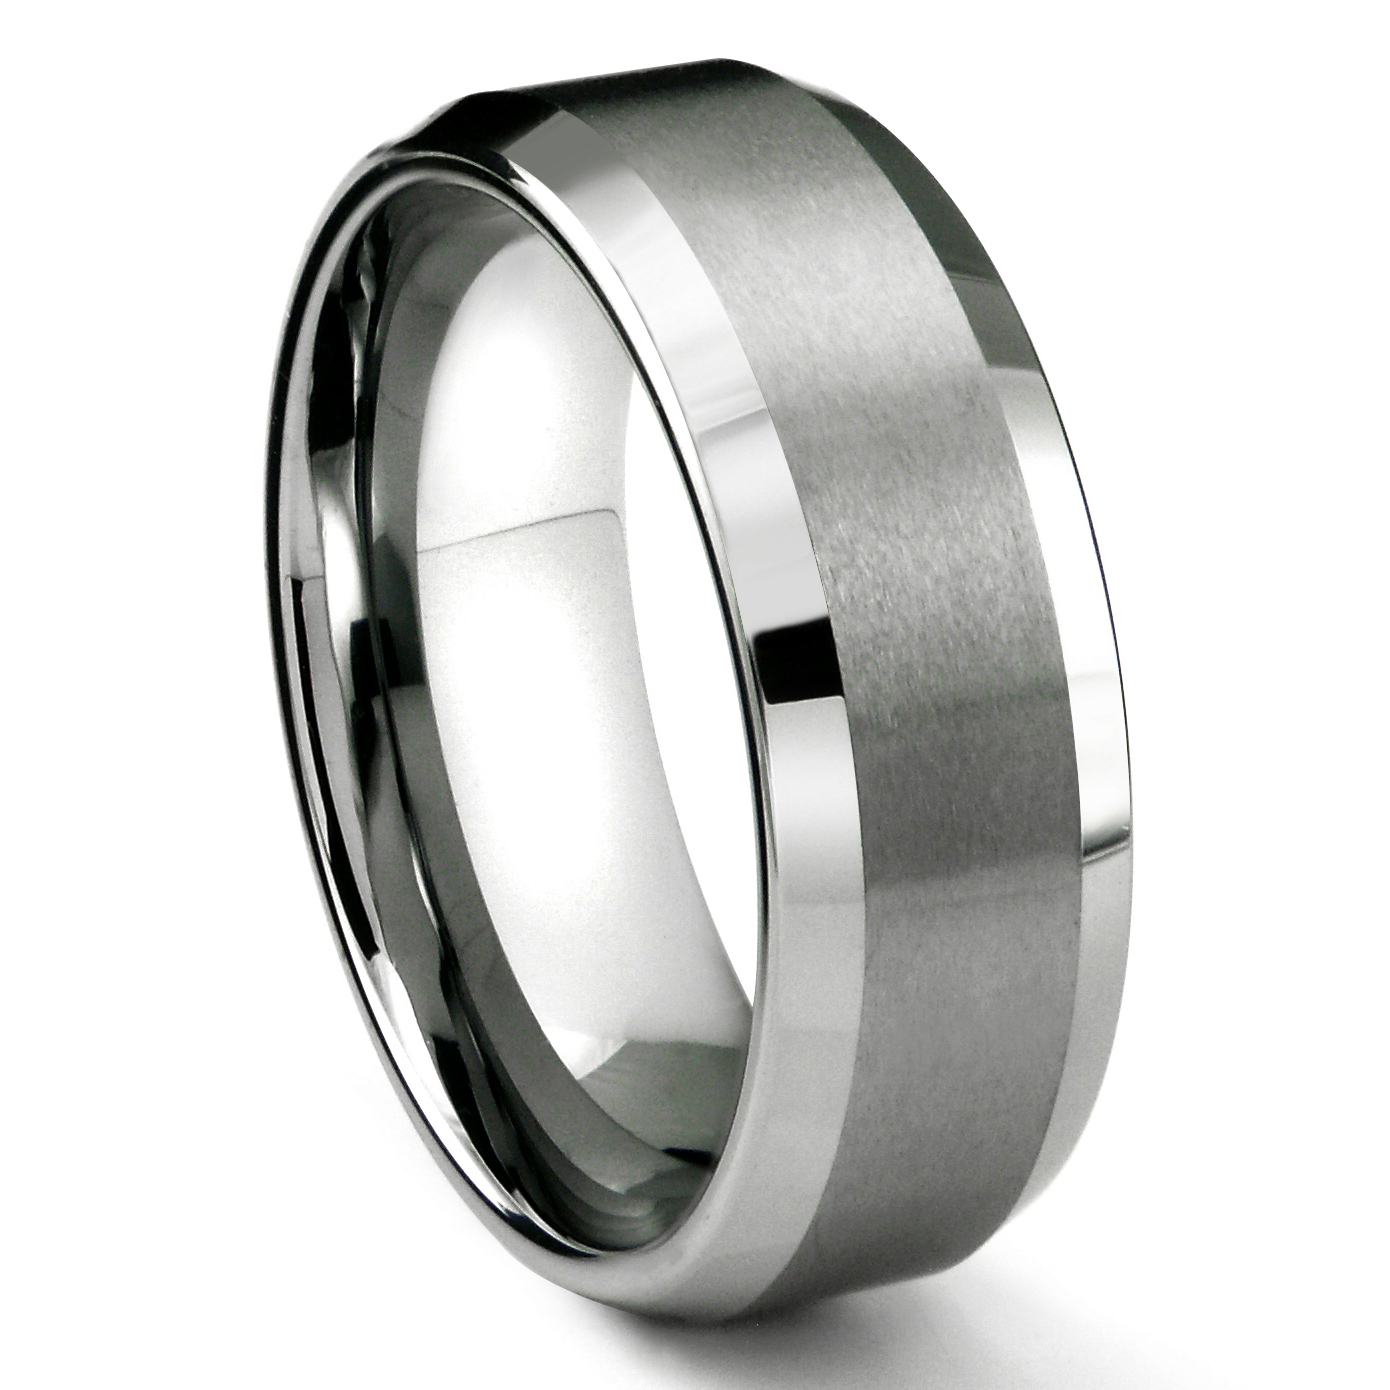 w tungsten and wedding bands finish cool wholesale silver ceramic diagonal red edges band anodized products beveled polished inner aluminum photo ring with rings brushed